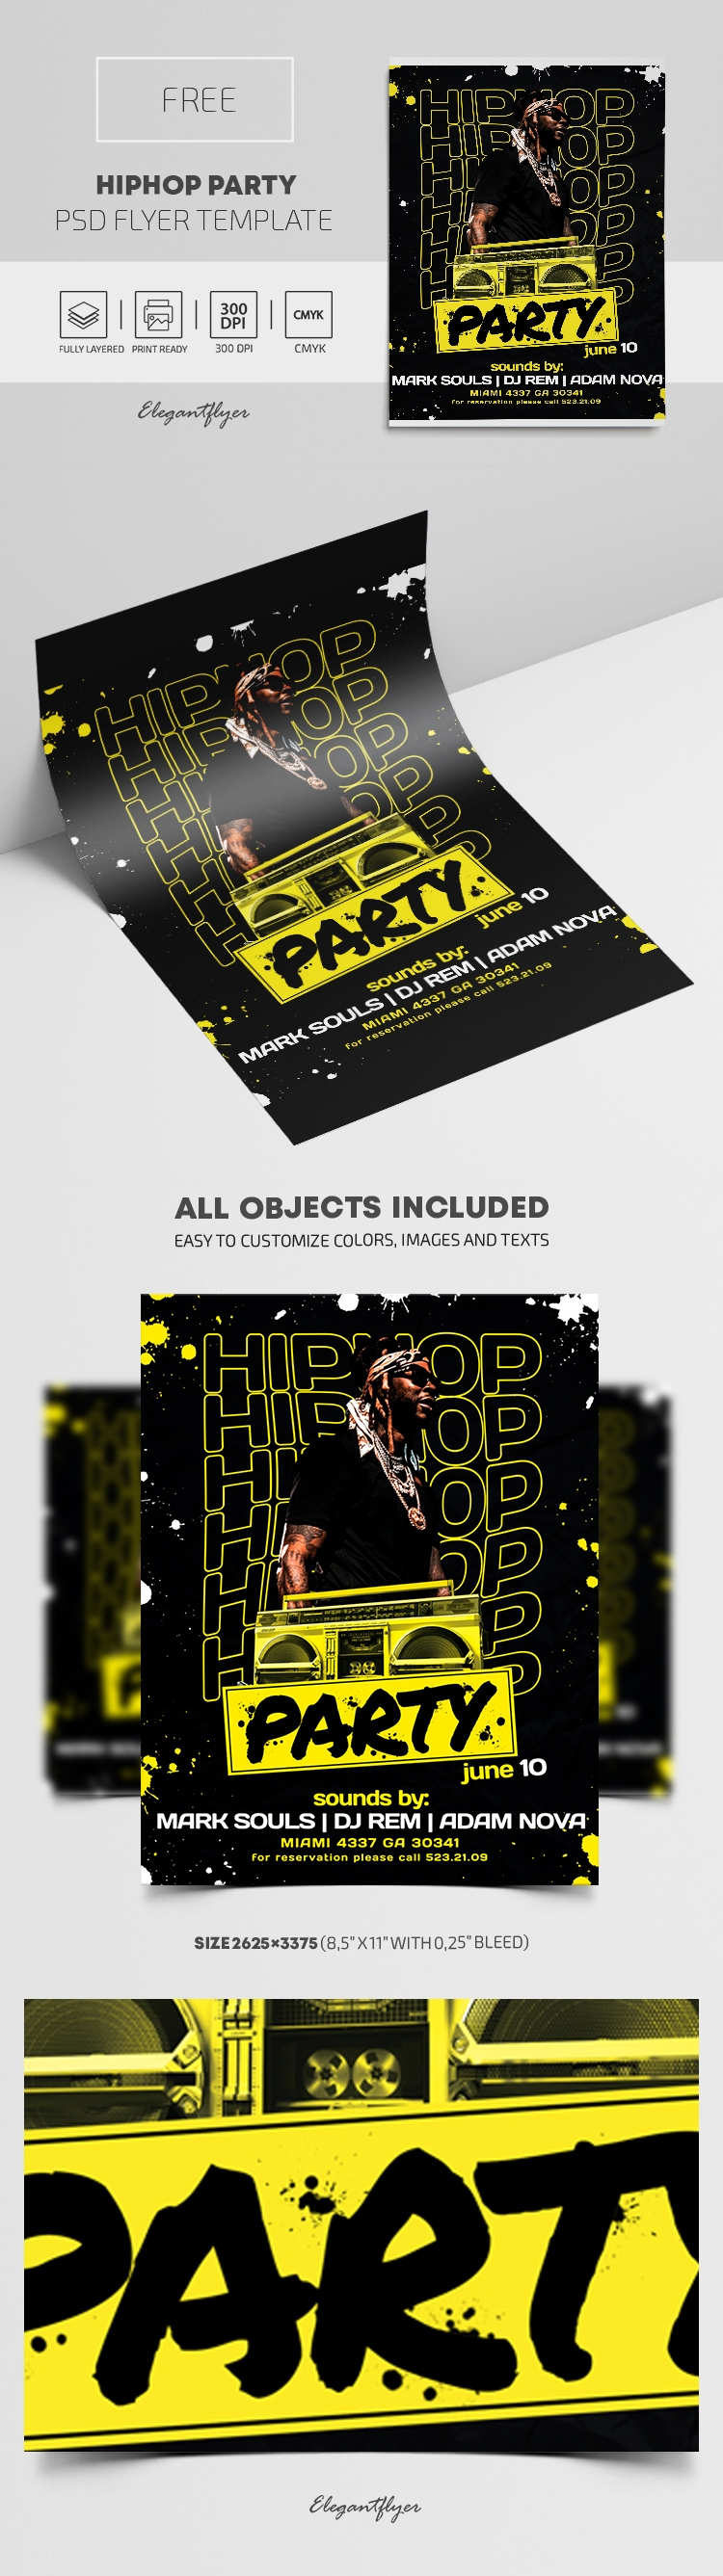 Hip Hop Party – Free Flyer PSD Template